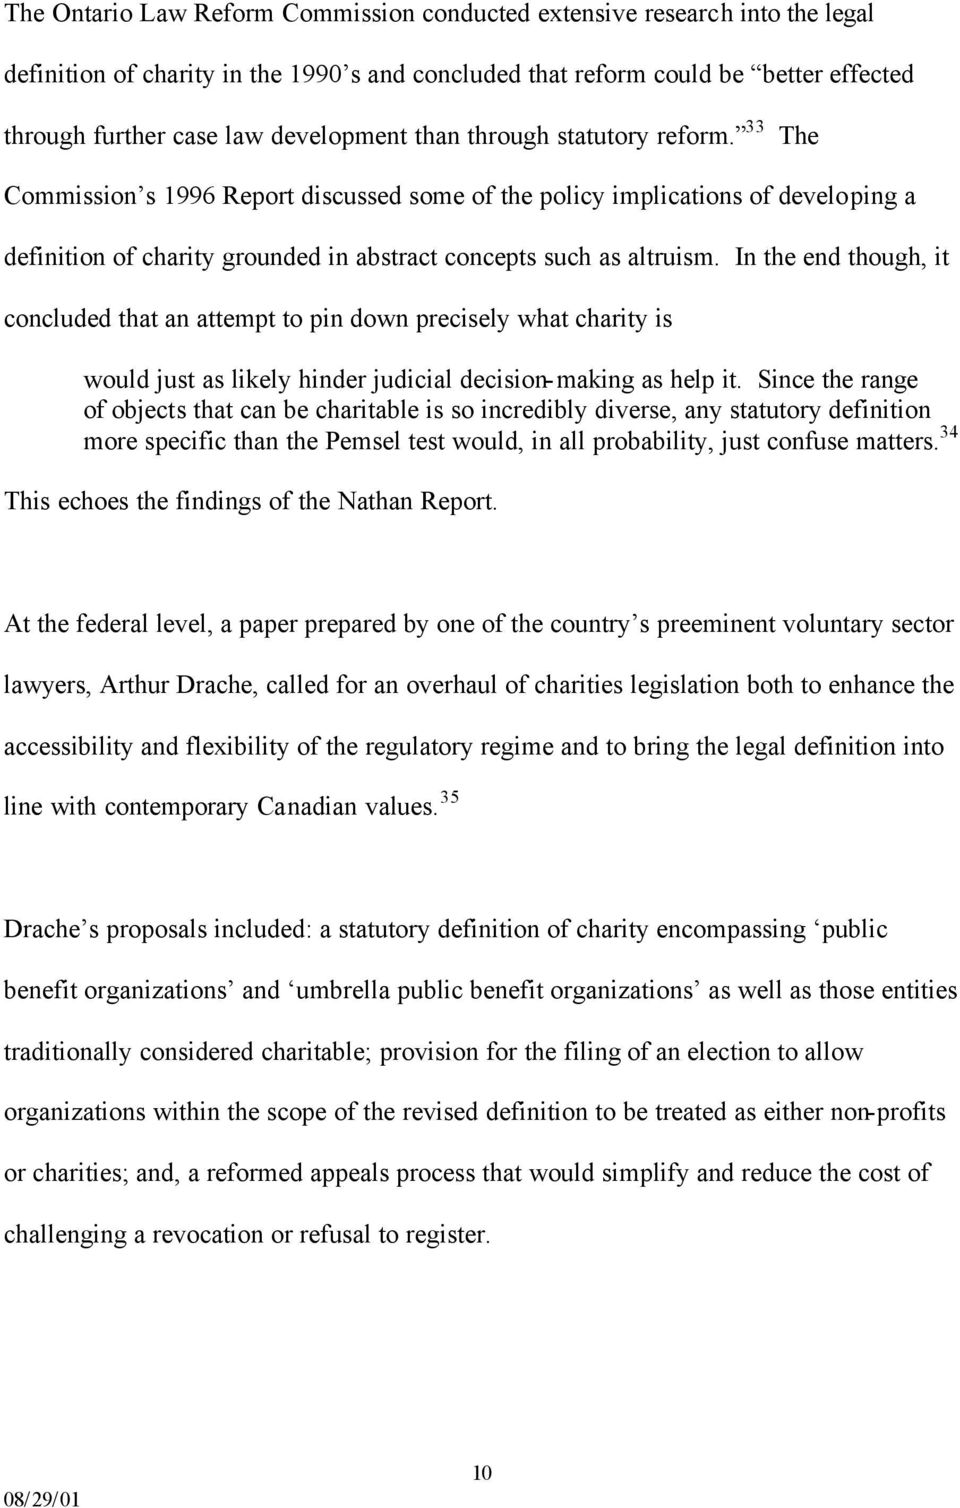 33 The Commission s 1996 Report discussed some of the policy implications of developing a definition of charity grounded in abstract concepts such as altruism.